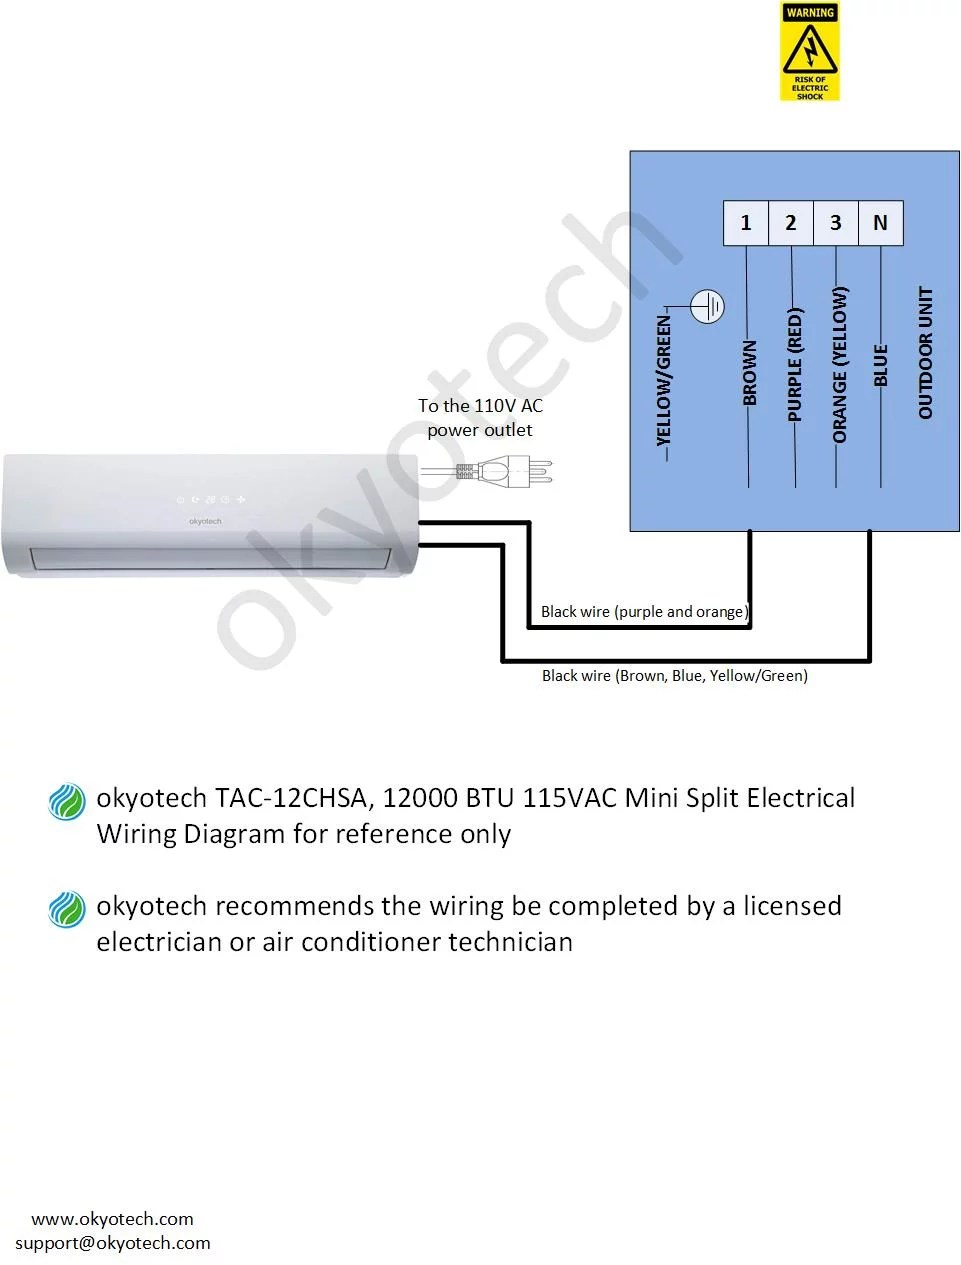 medium resolution of  the 18 000 btu electrical wiring below is only applicable with previous version of 18 000 btu okyotech mini split unit which has built in power plug on the